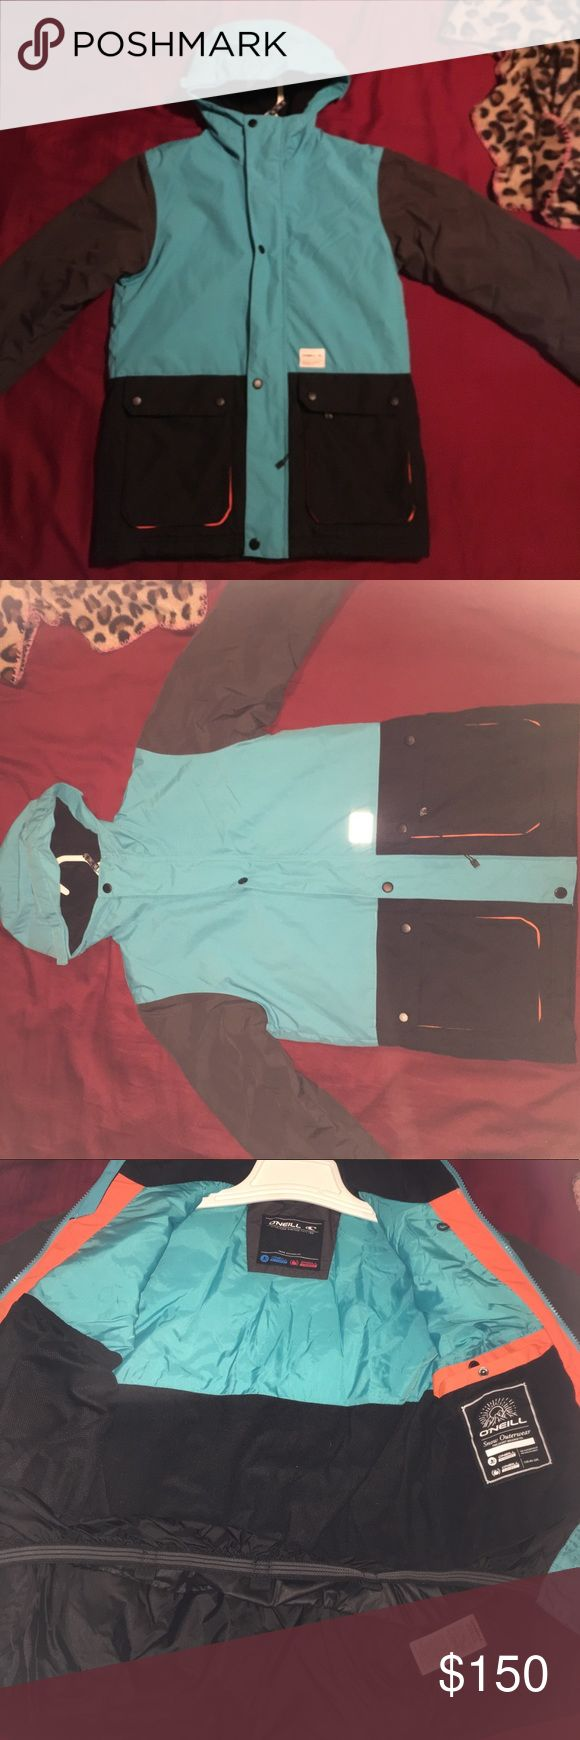 Teal, black & gray Snowboarding Jacket Insulated, waterproof snowboard jacket worn once. Super warm. Boyfriend bought it but it turned out to be too small for me. It has 2 outer pockets and 2 inner pockets. Both zip and Velcro to keep your things safe. O'Neill Jackets & Coats